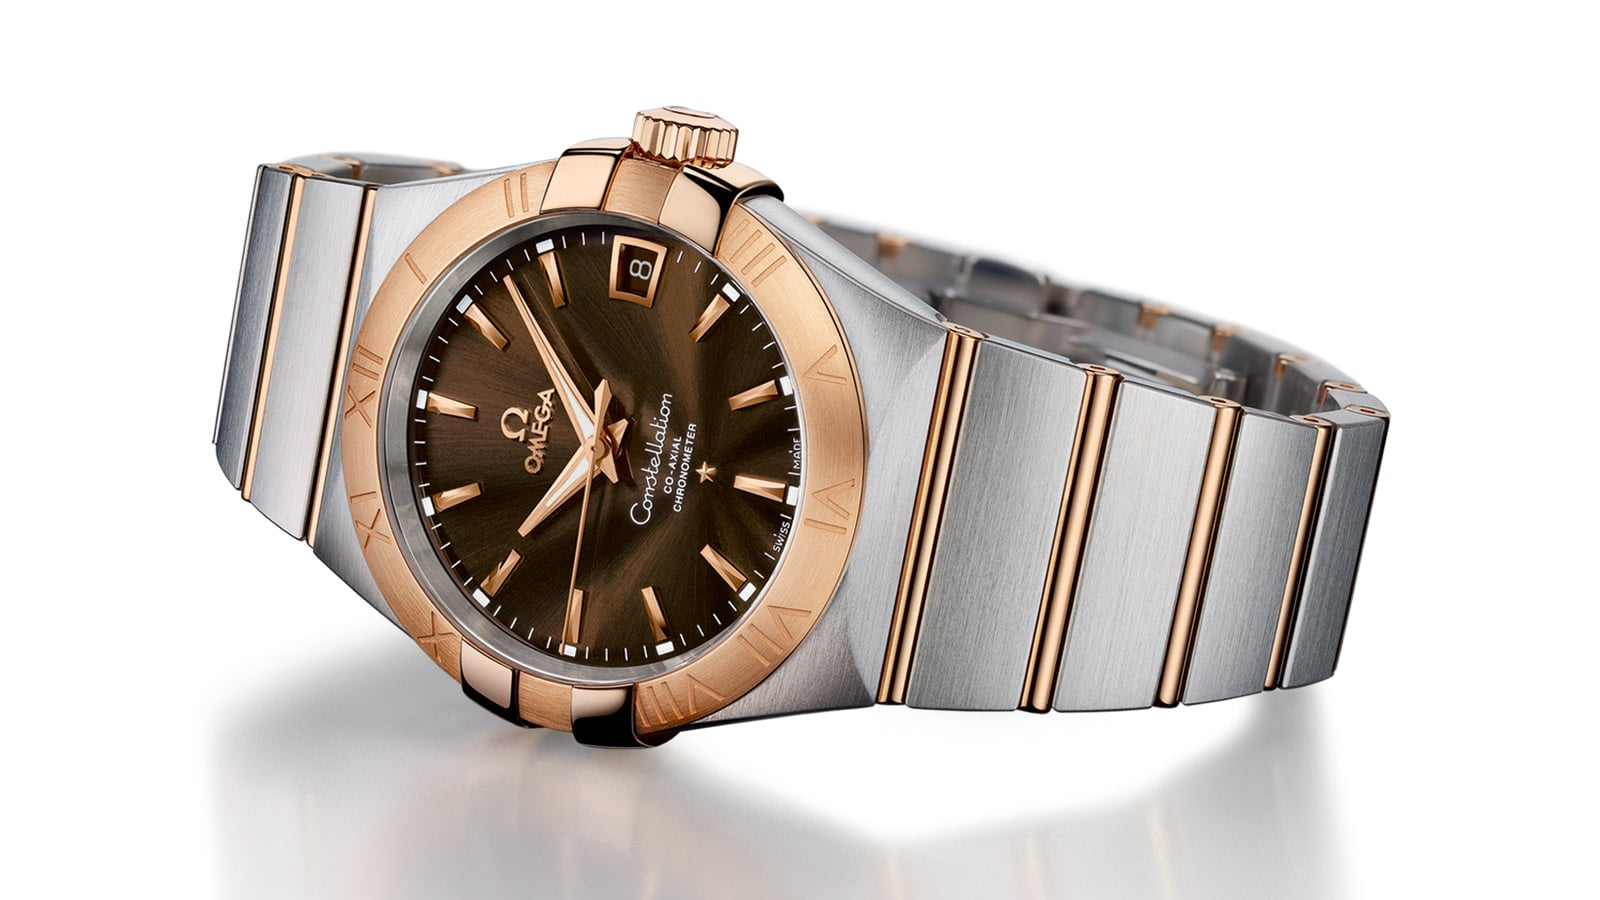 765287e0be3 Omega Constellation Watch for men in red gold and steel with a brown dial